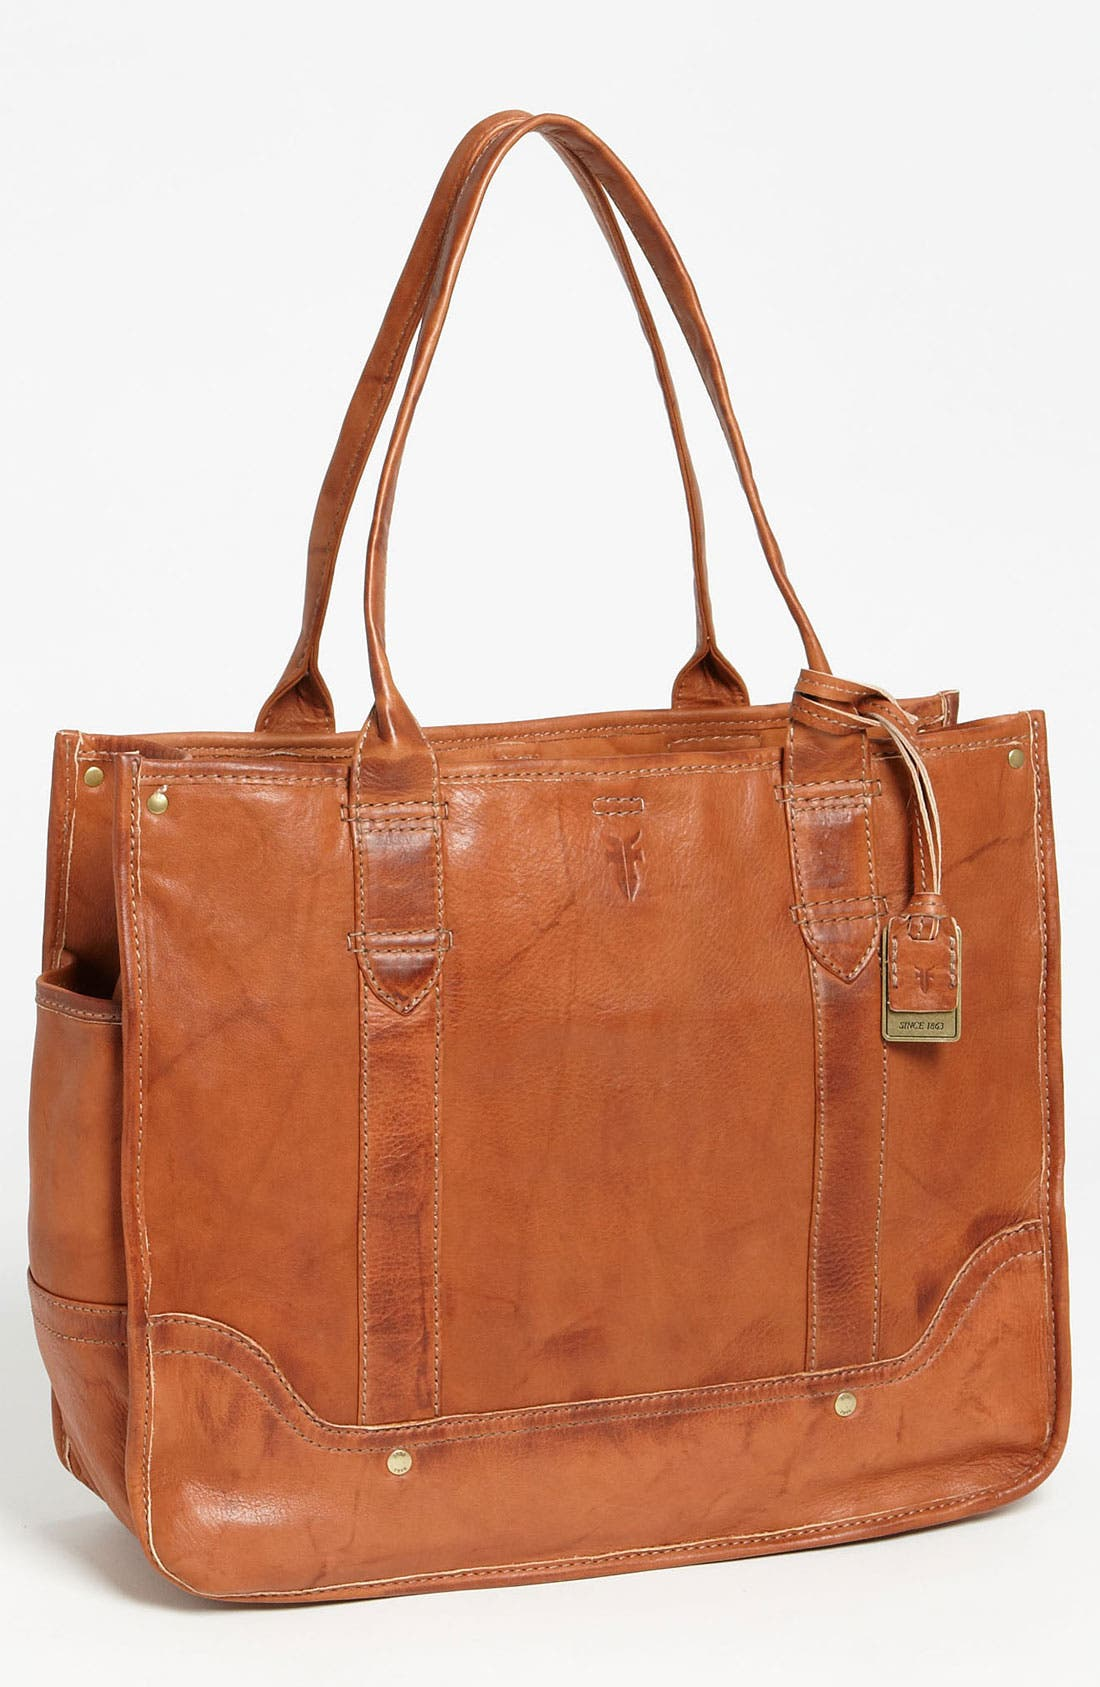 Main Image - Frye 'Campus' Leather Shopper